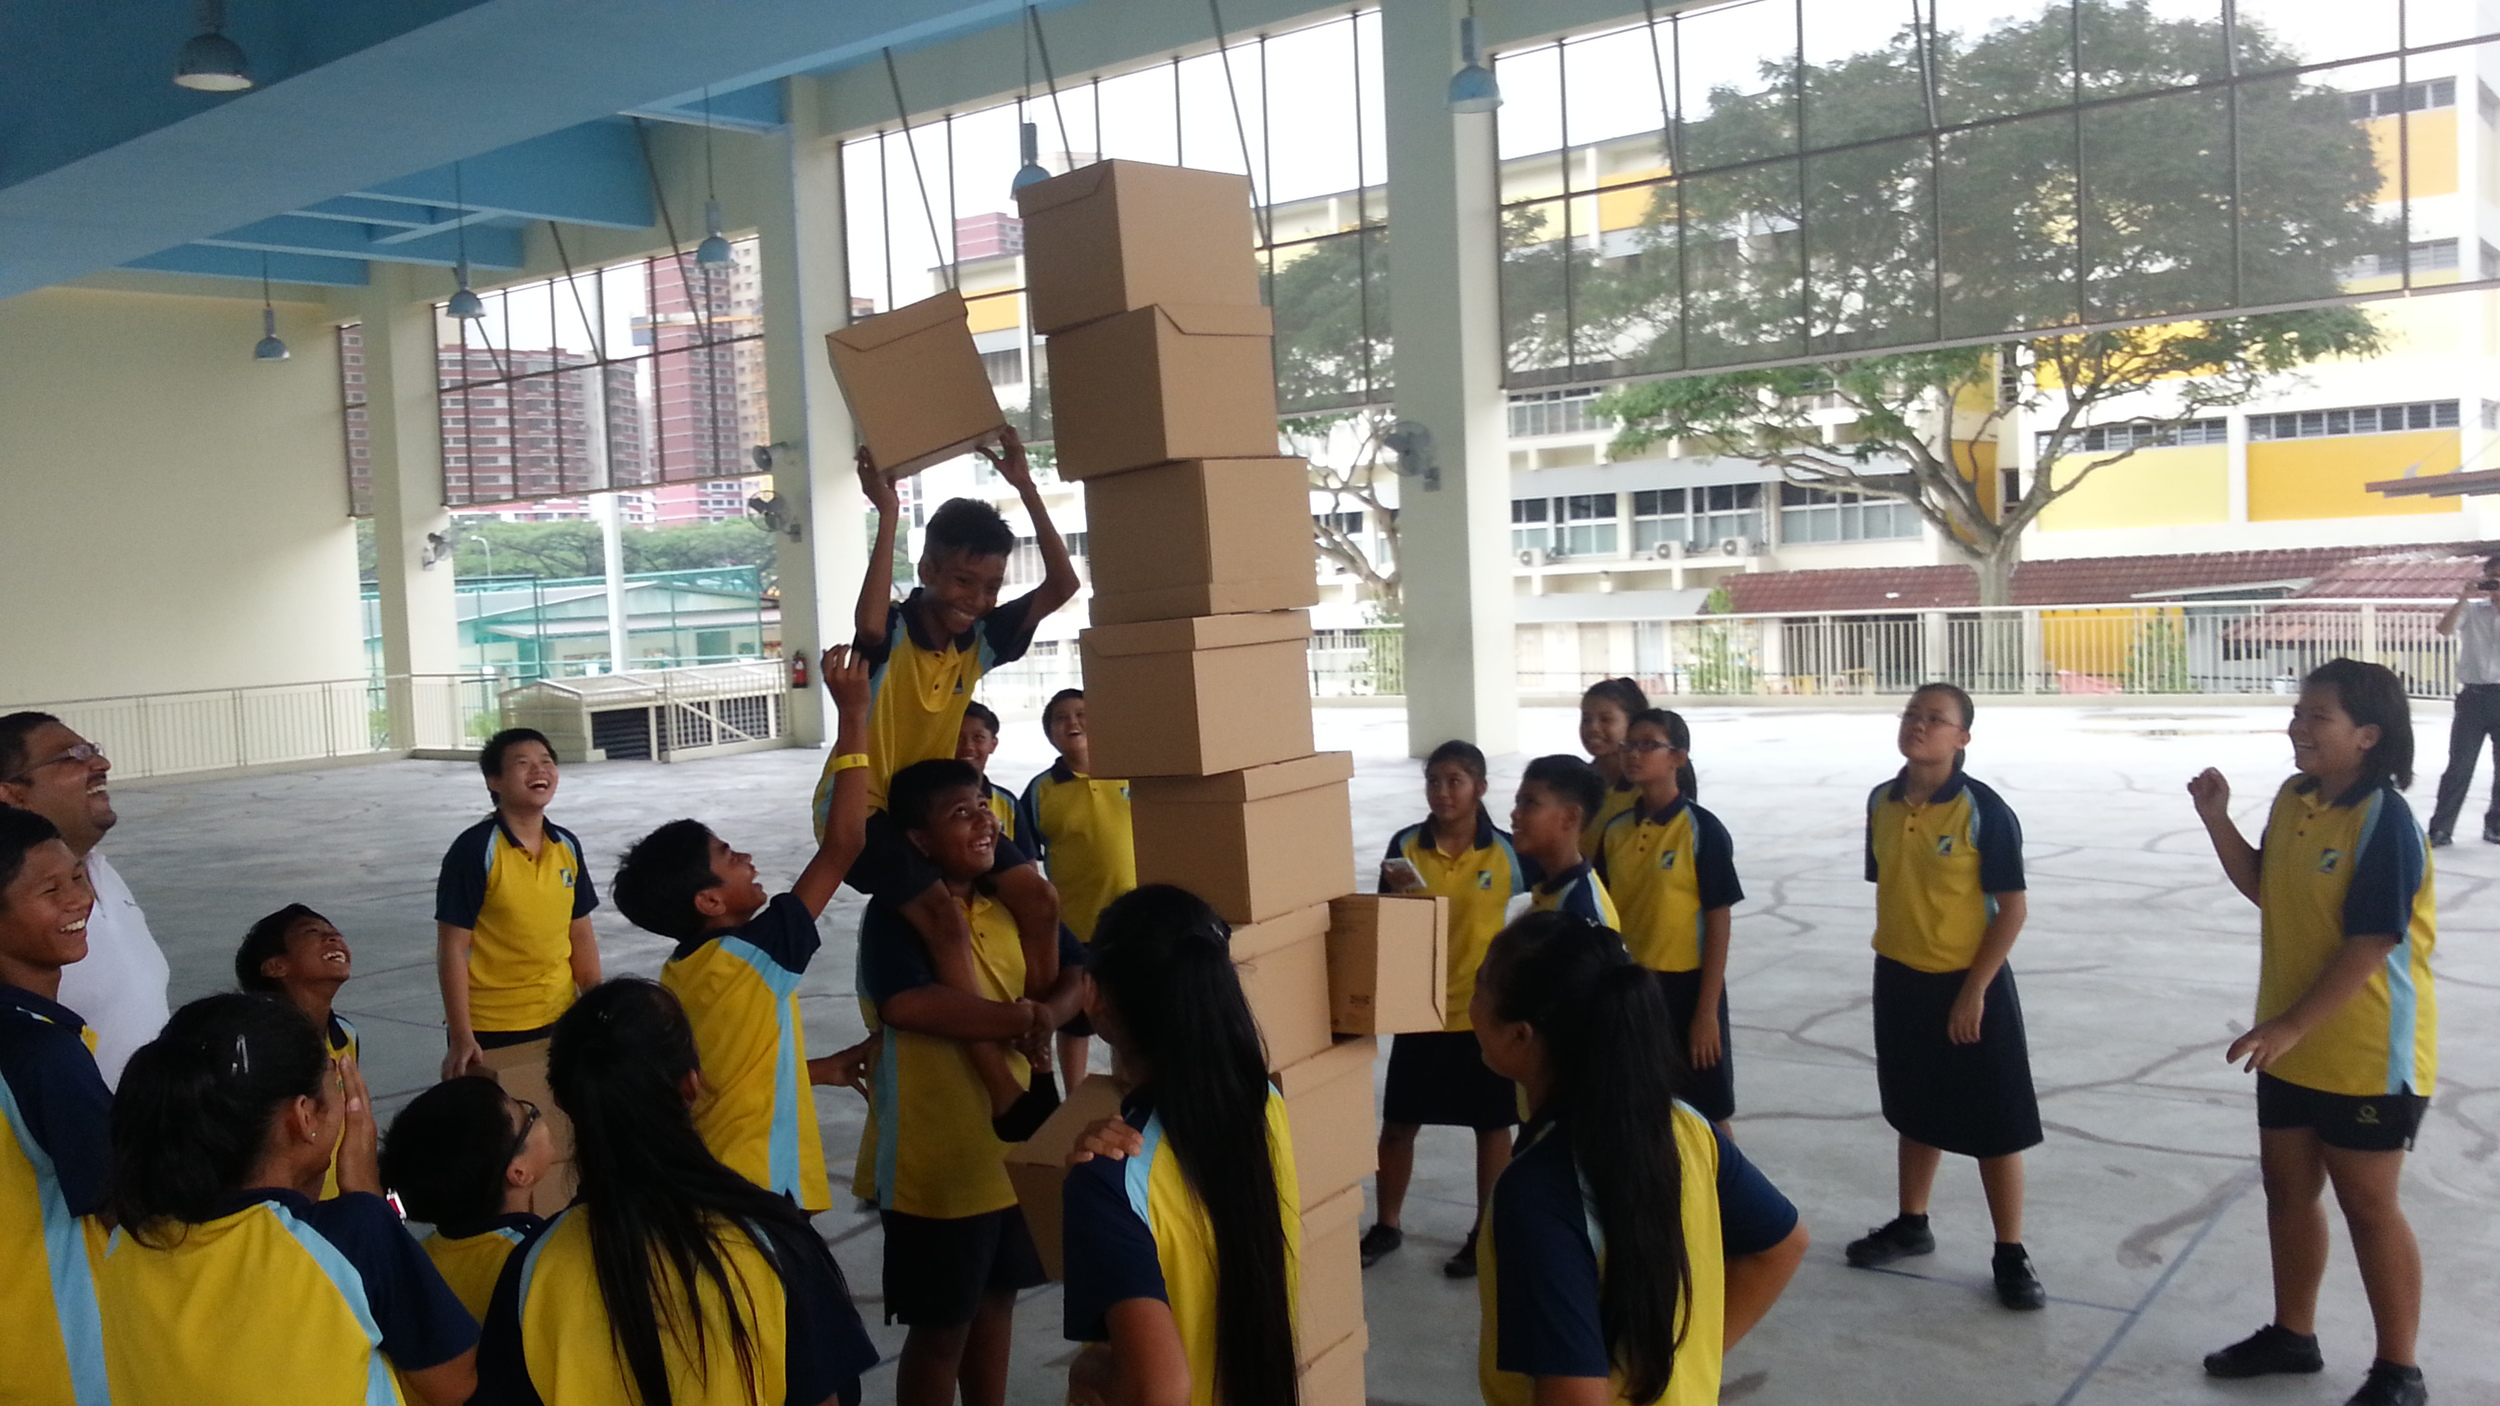 Clifton with students having a blast with boxes.